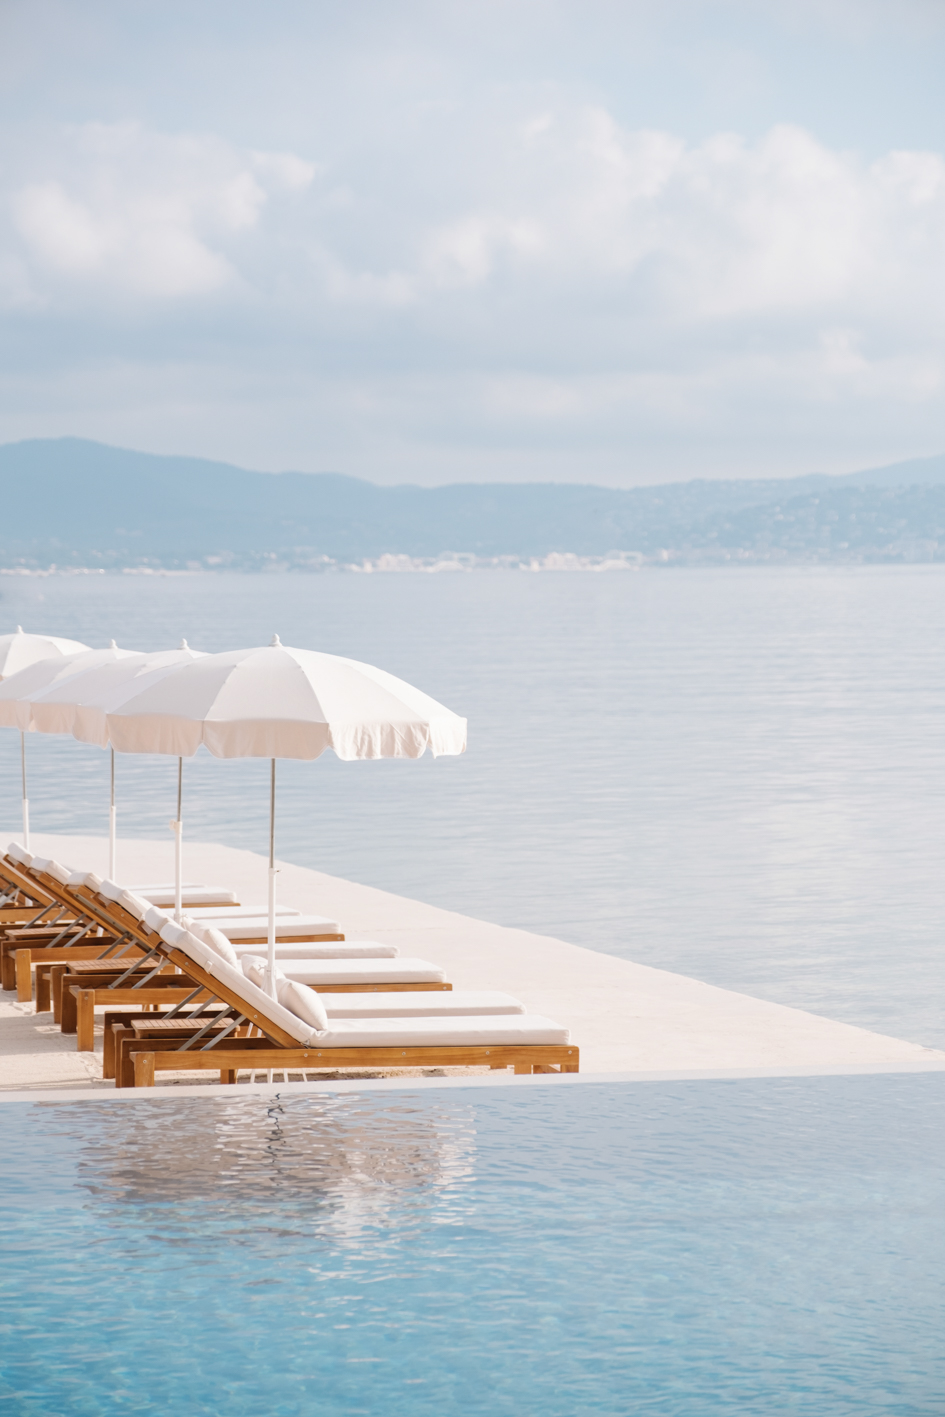 Cheval Blanc Hotel Saint Tropez France - Via Tolila